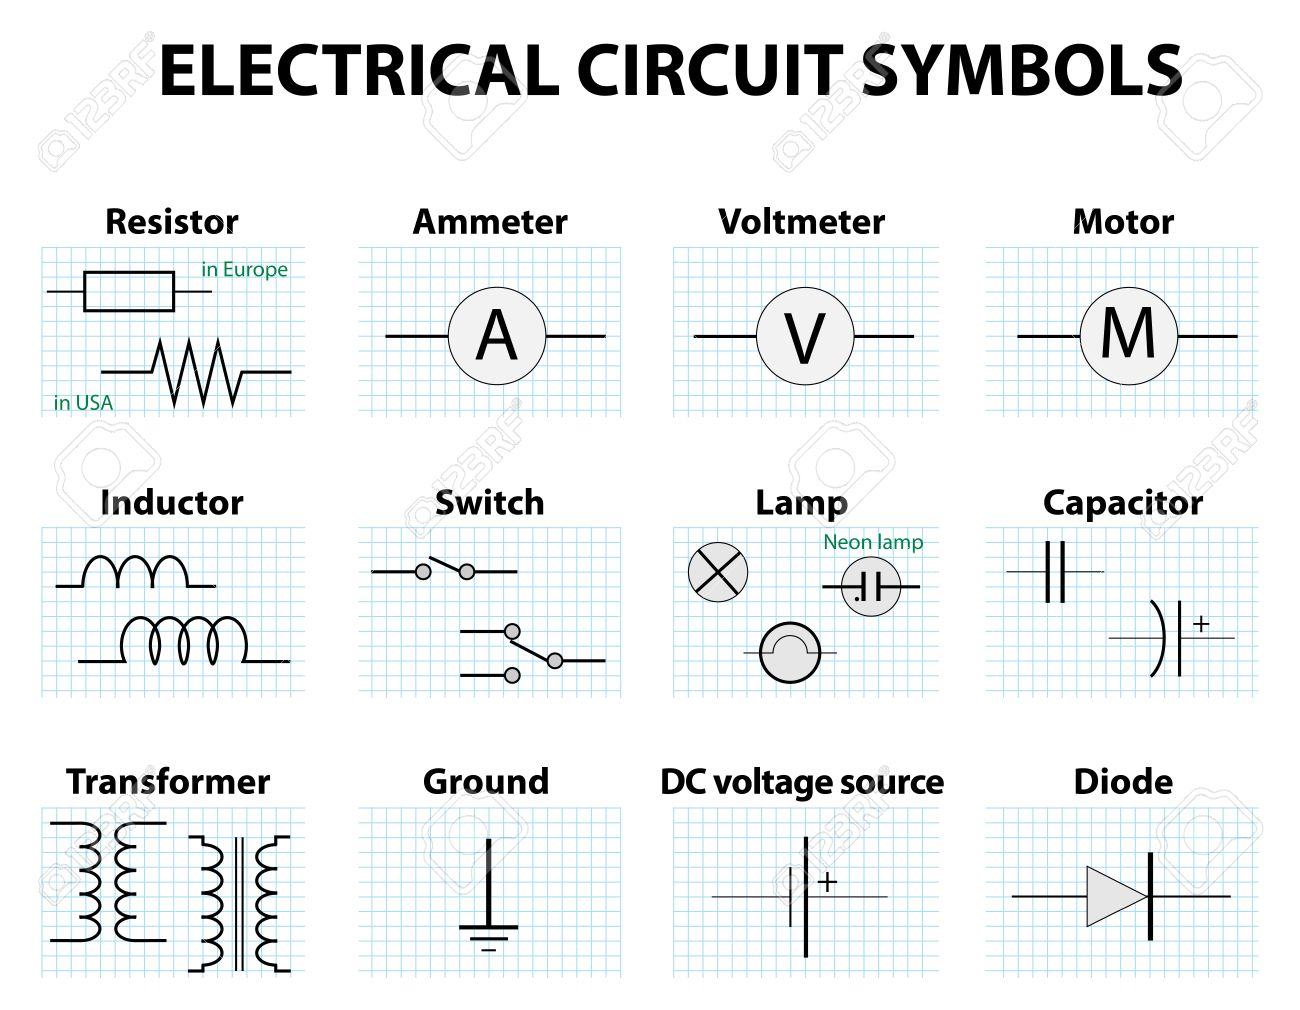 electronic symbol electric circuit symbol element set pictogram electronic symbol electric circuit symbol element set pictogram used to represent electrical and electronic